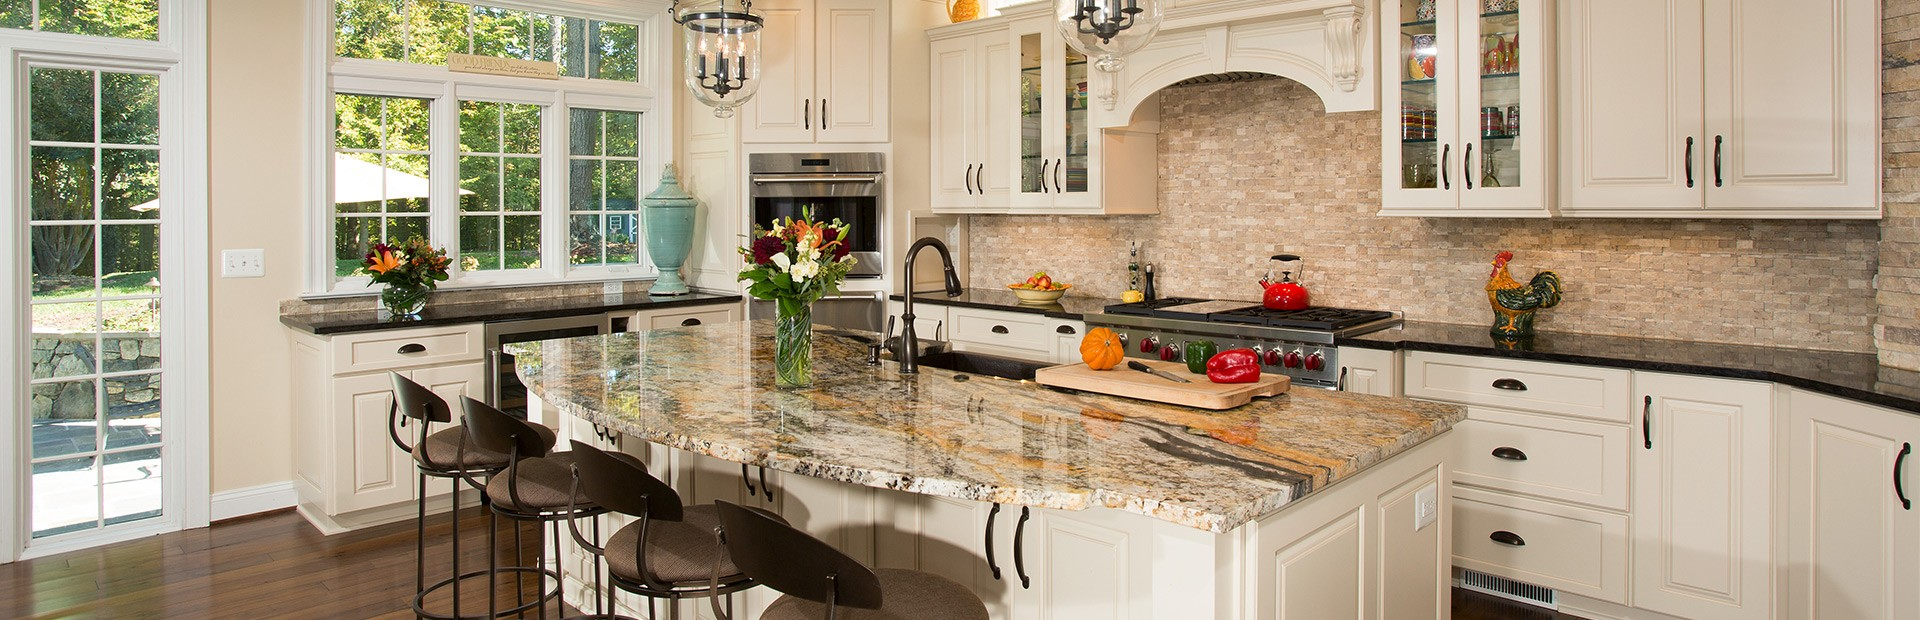 Kitchen Remodeling In Northern Virginia Burke Arlington Fairfax VA